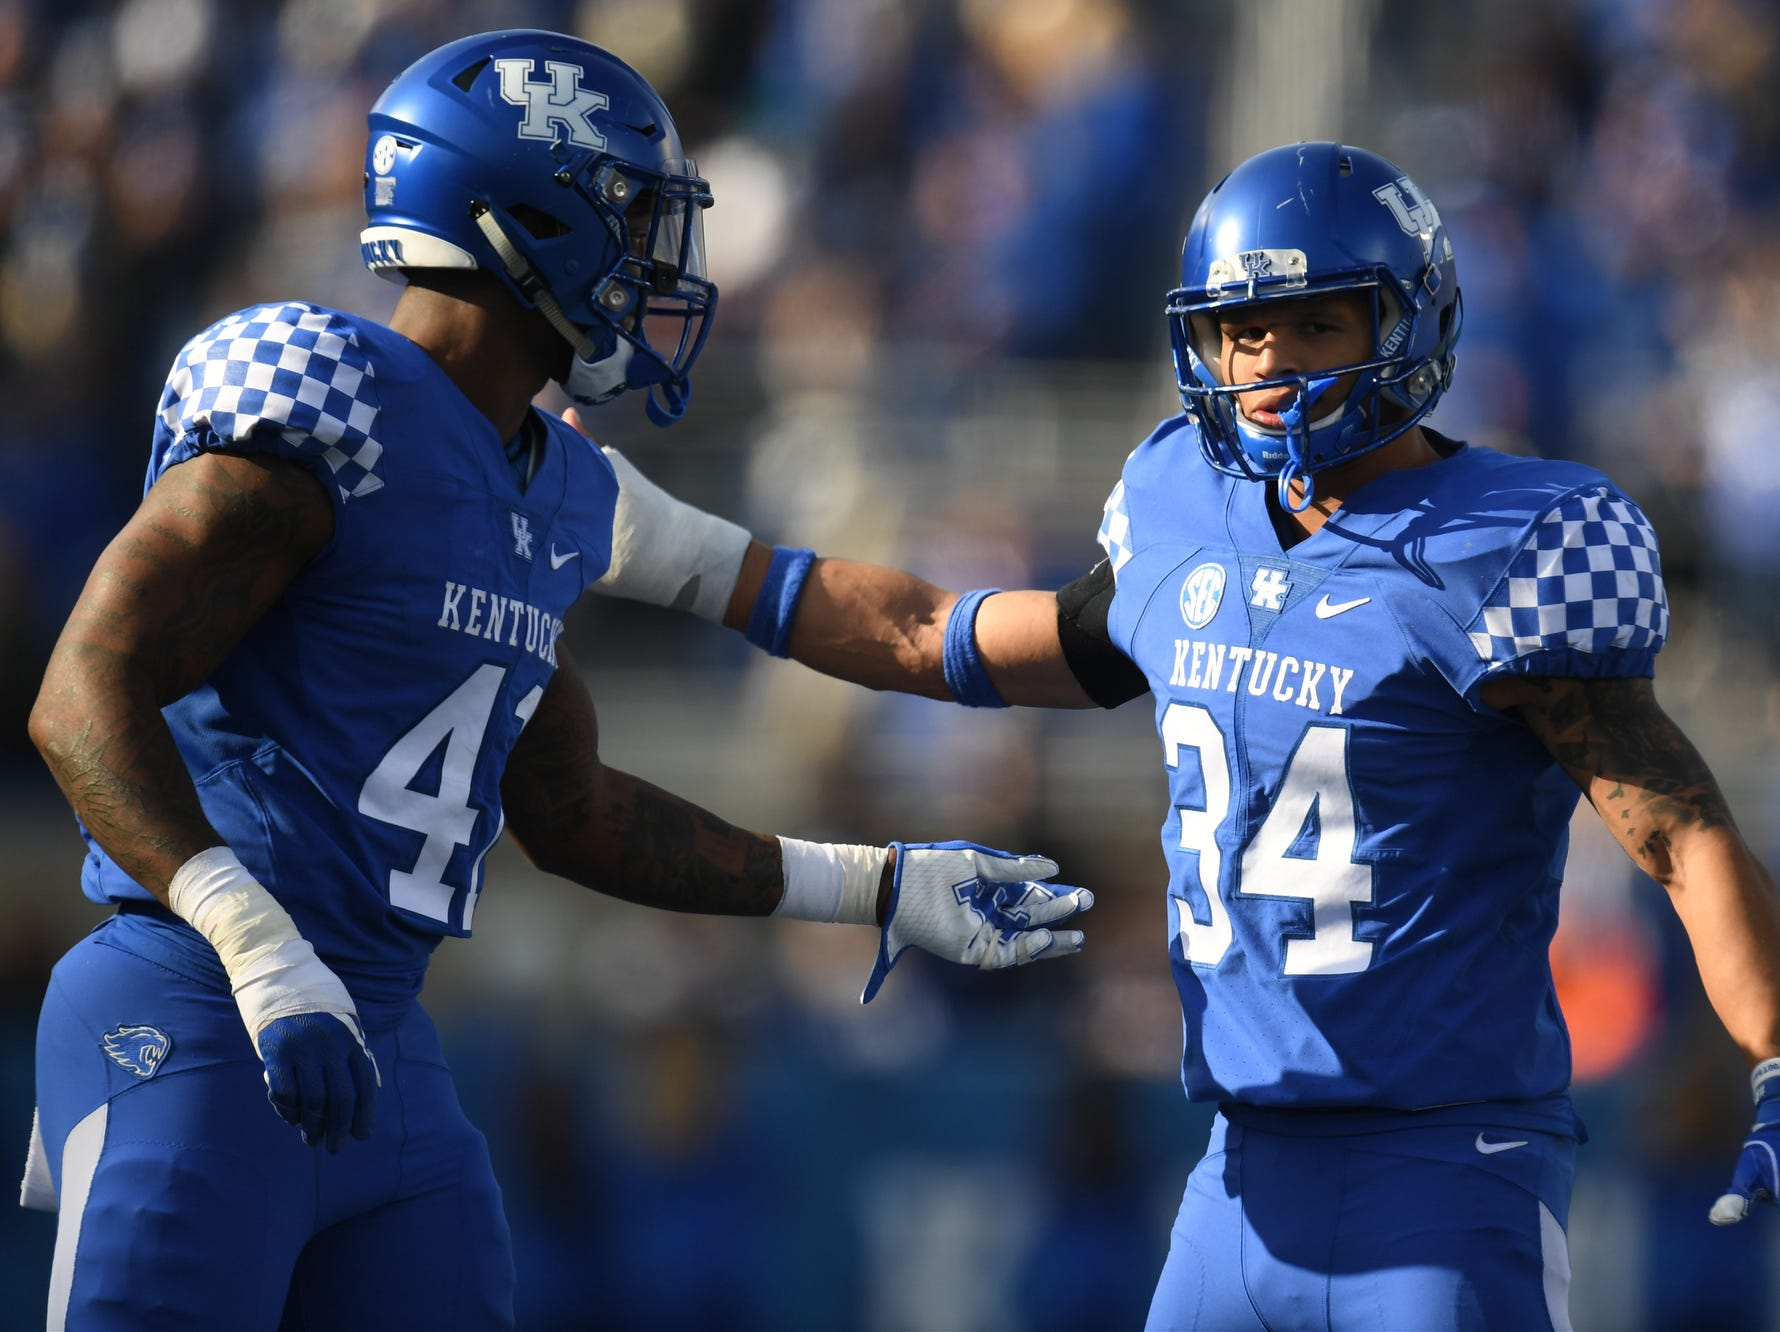 UK DE Josh Allen and LB Jordan Jones during the University of Kentucky football game against Middle Tennessee at Kroger Field in Lexington, Kentucky on Saturday, November 17, 2018.